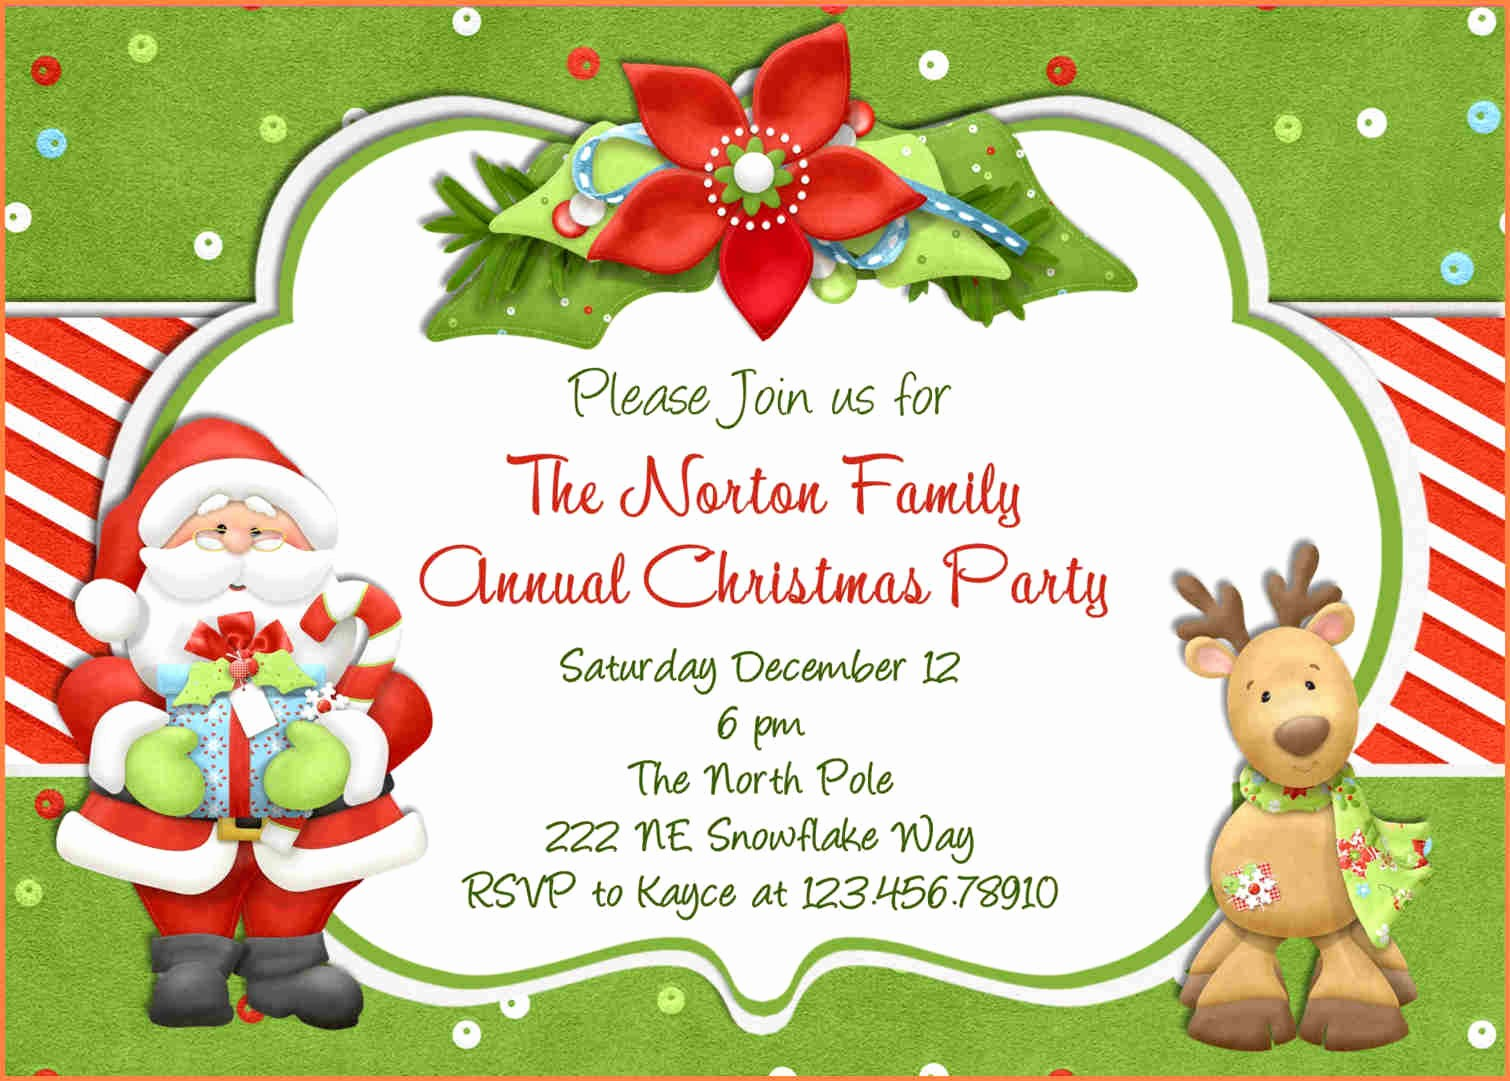 Office Christmas Party Free Download New 15 Christmas Party Invitation Template